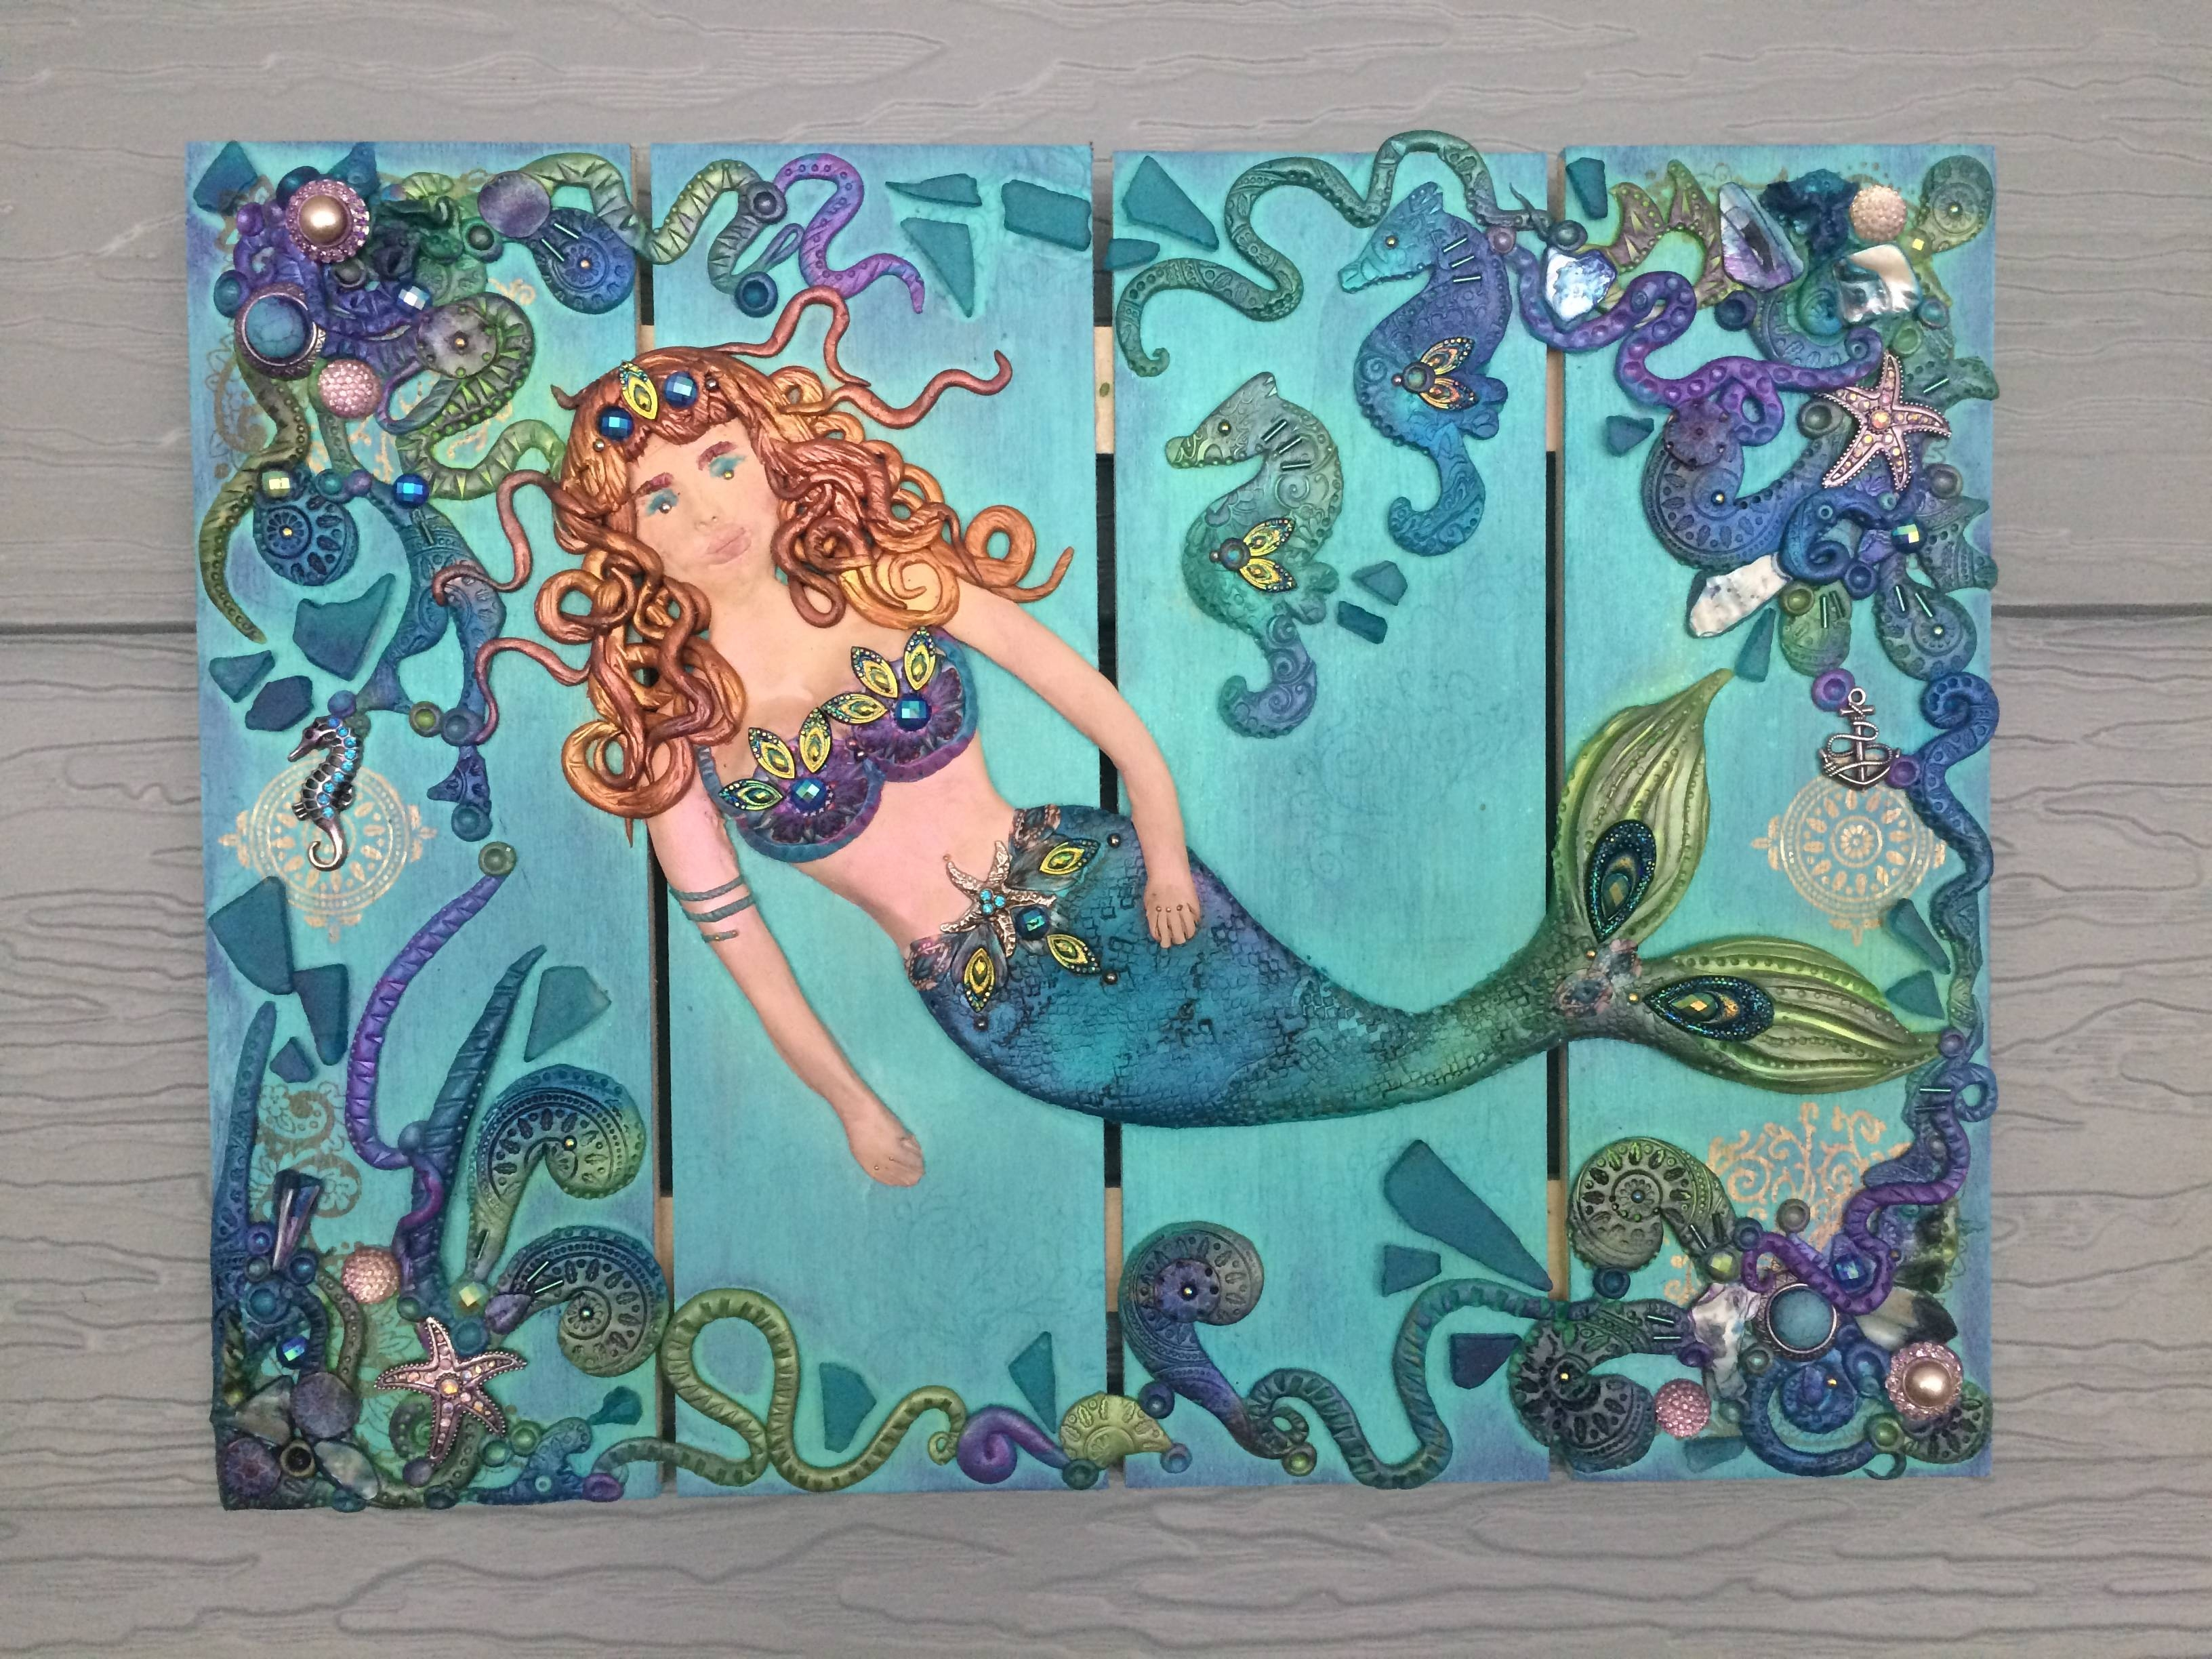 Handmade Polymer Clay Hanging Mermaid Wall Plaque | The Clay Monet Within Best And Newest Polymer Clay Wall Art (View 7 of 20)